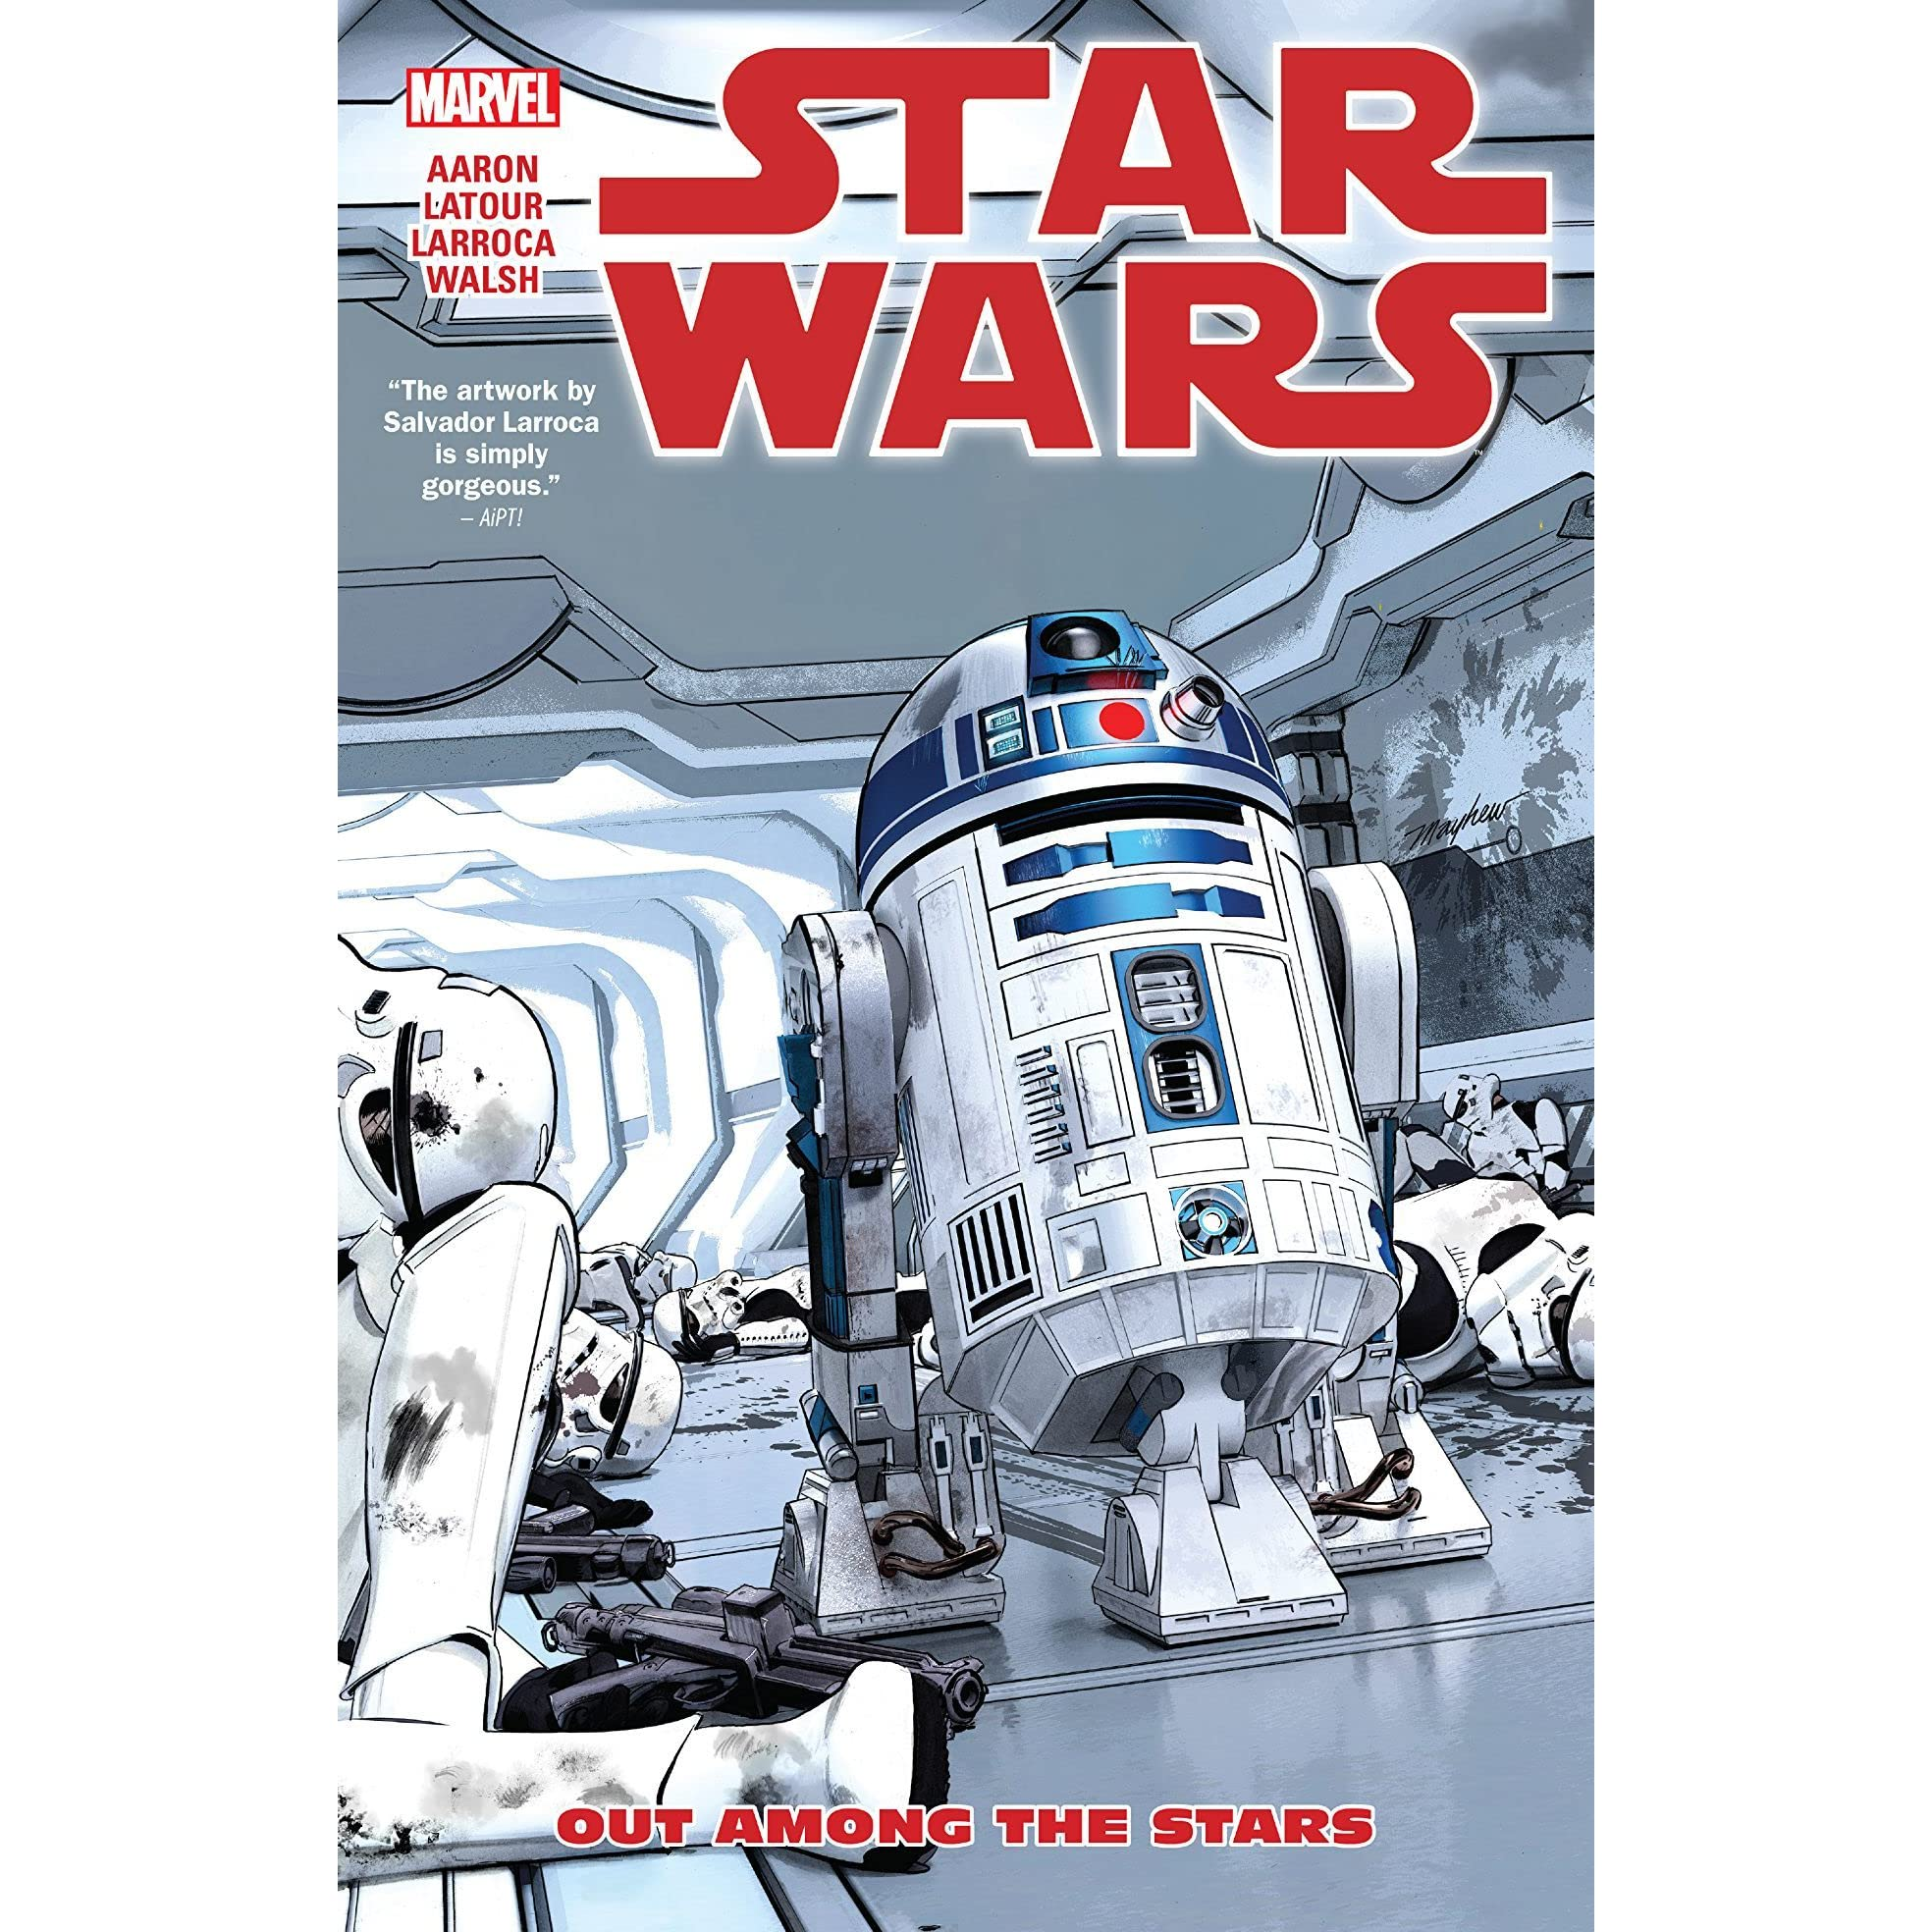 Star Wars Vol 6 Out Among The Stars By Jason Aaron